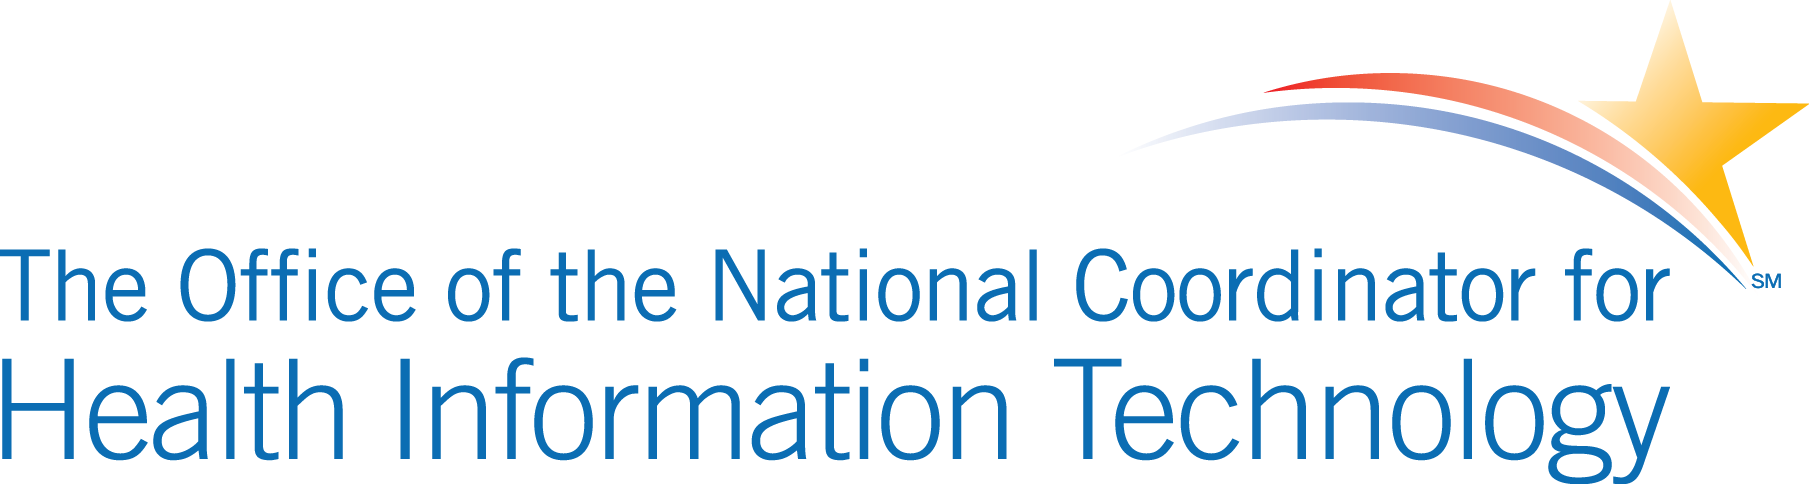 ONC_Logo_high_resolution.png